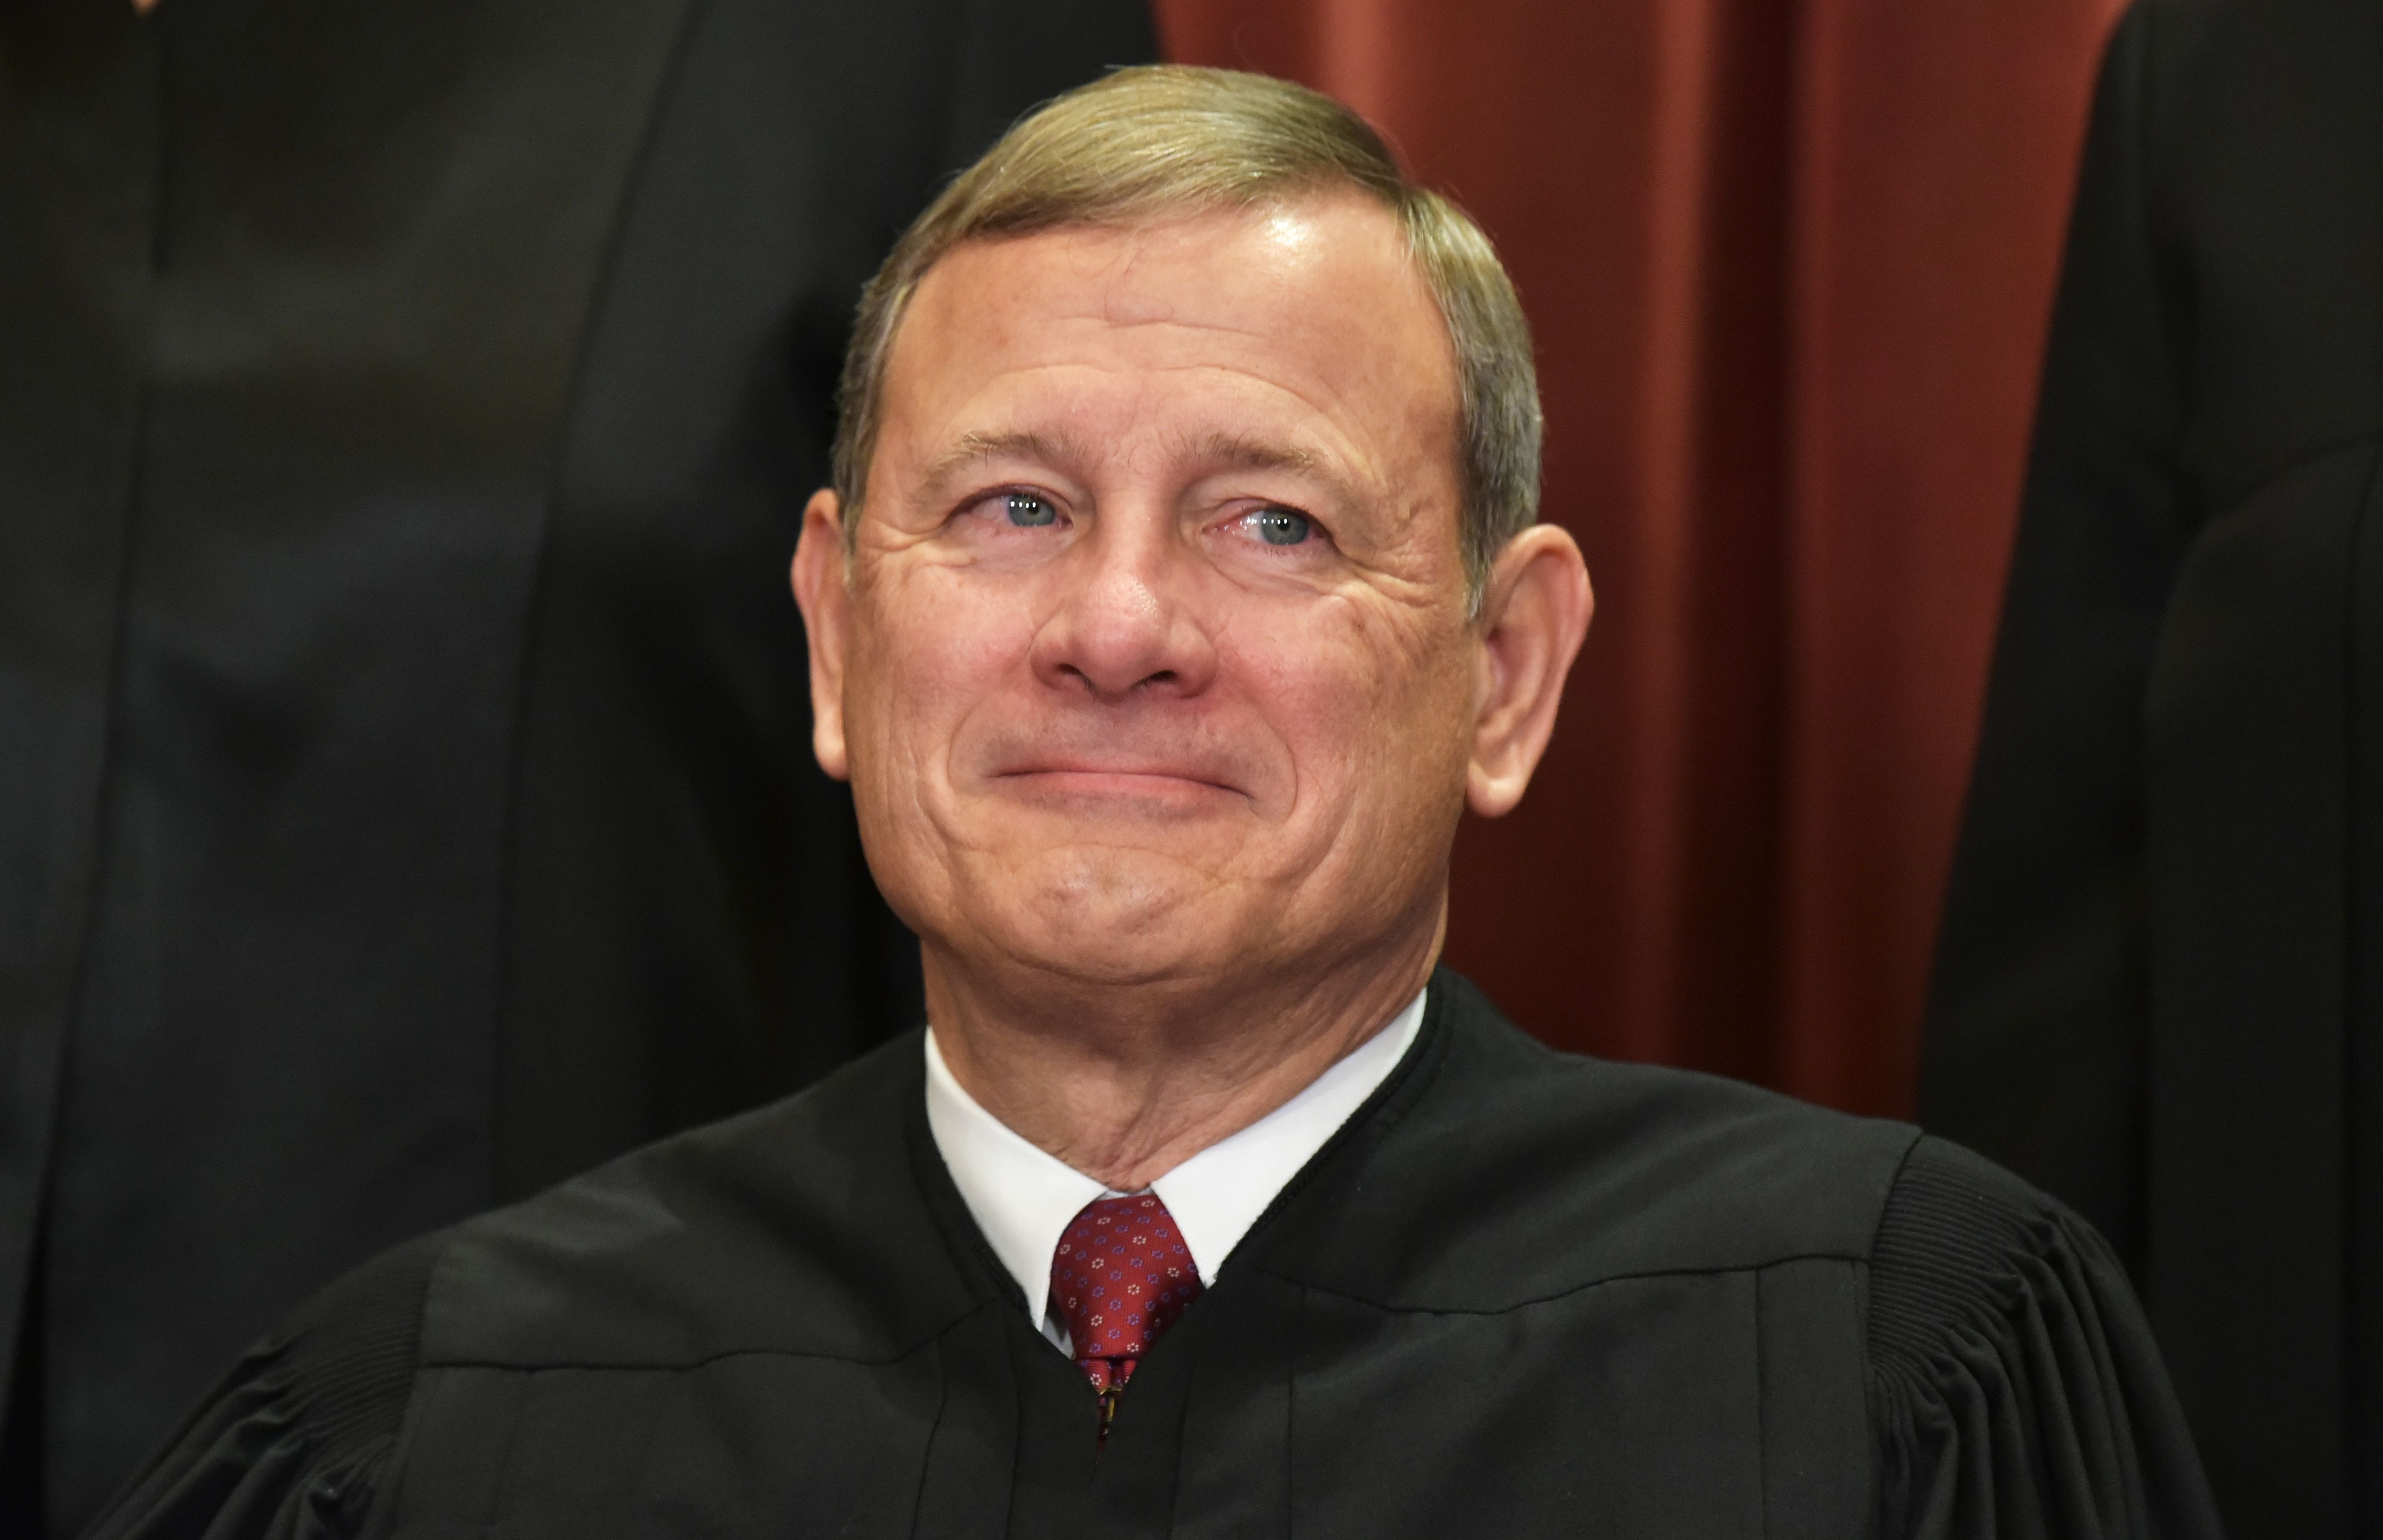 Chief Justice John Roberts poses for the official group photo on November 30, 2018. (Mandel Ngan/AFP/Getty Images)